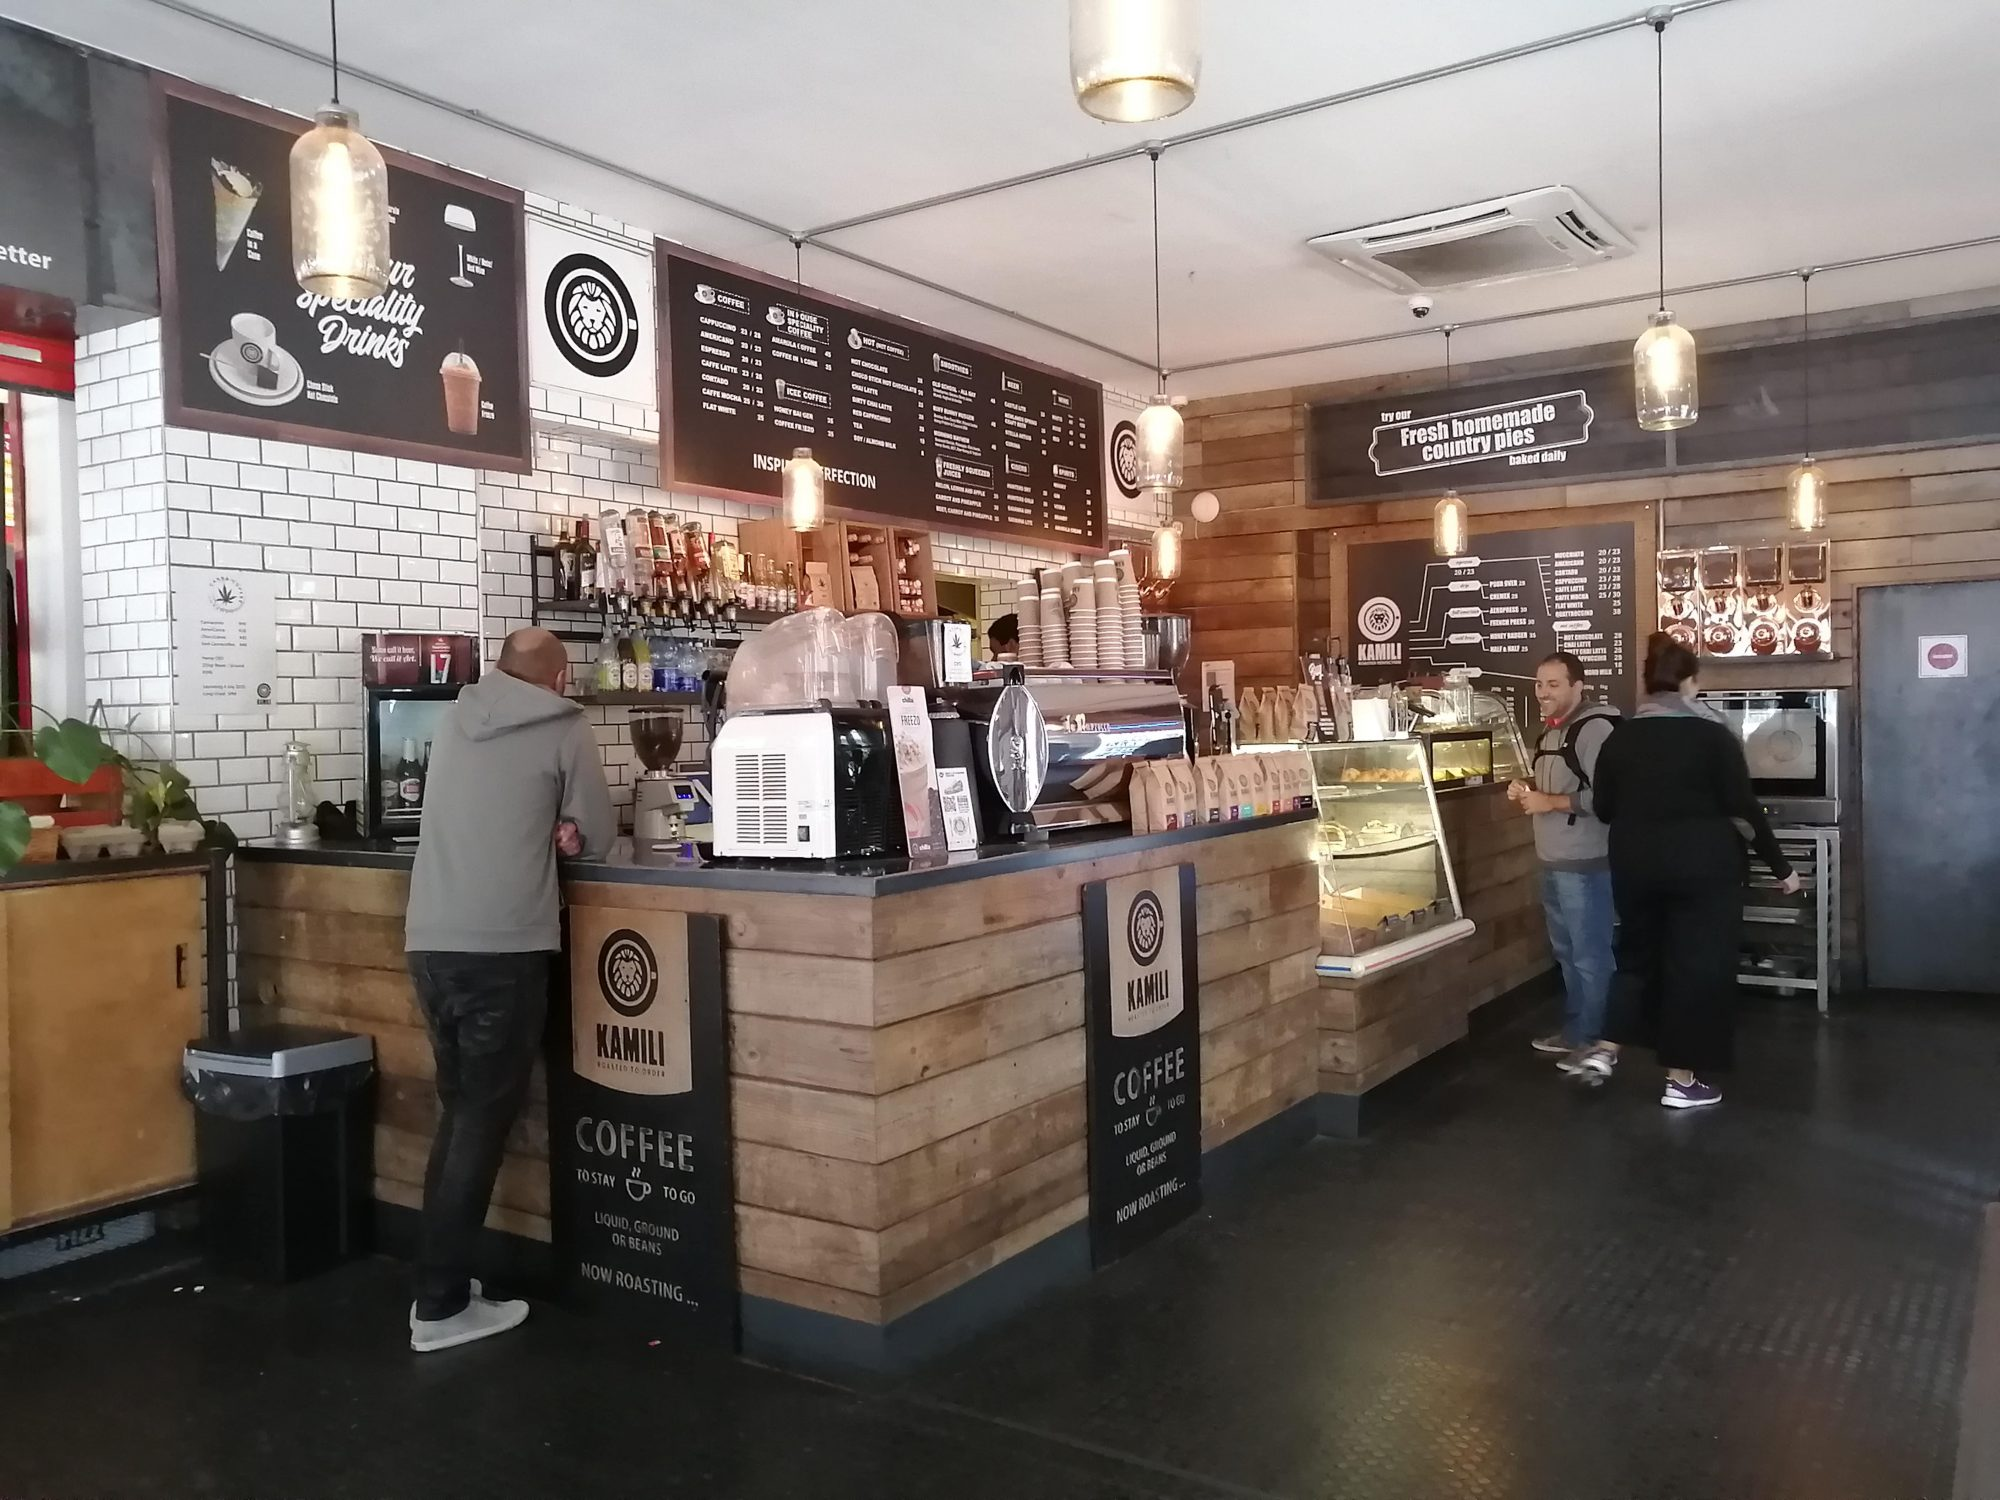 Kamili Coffee on Long - Cape Town